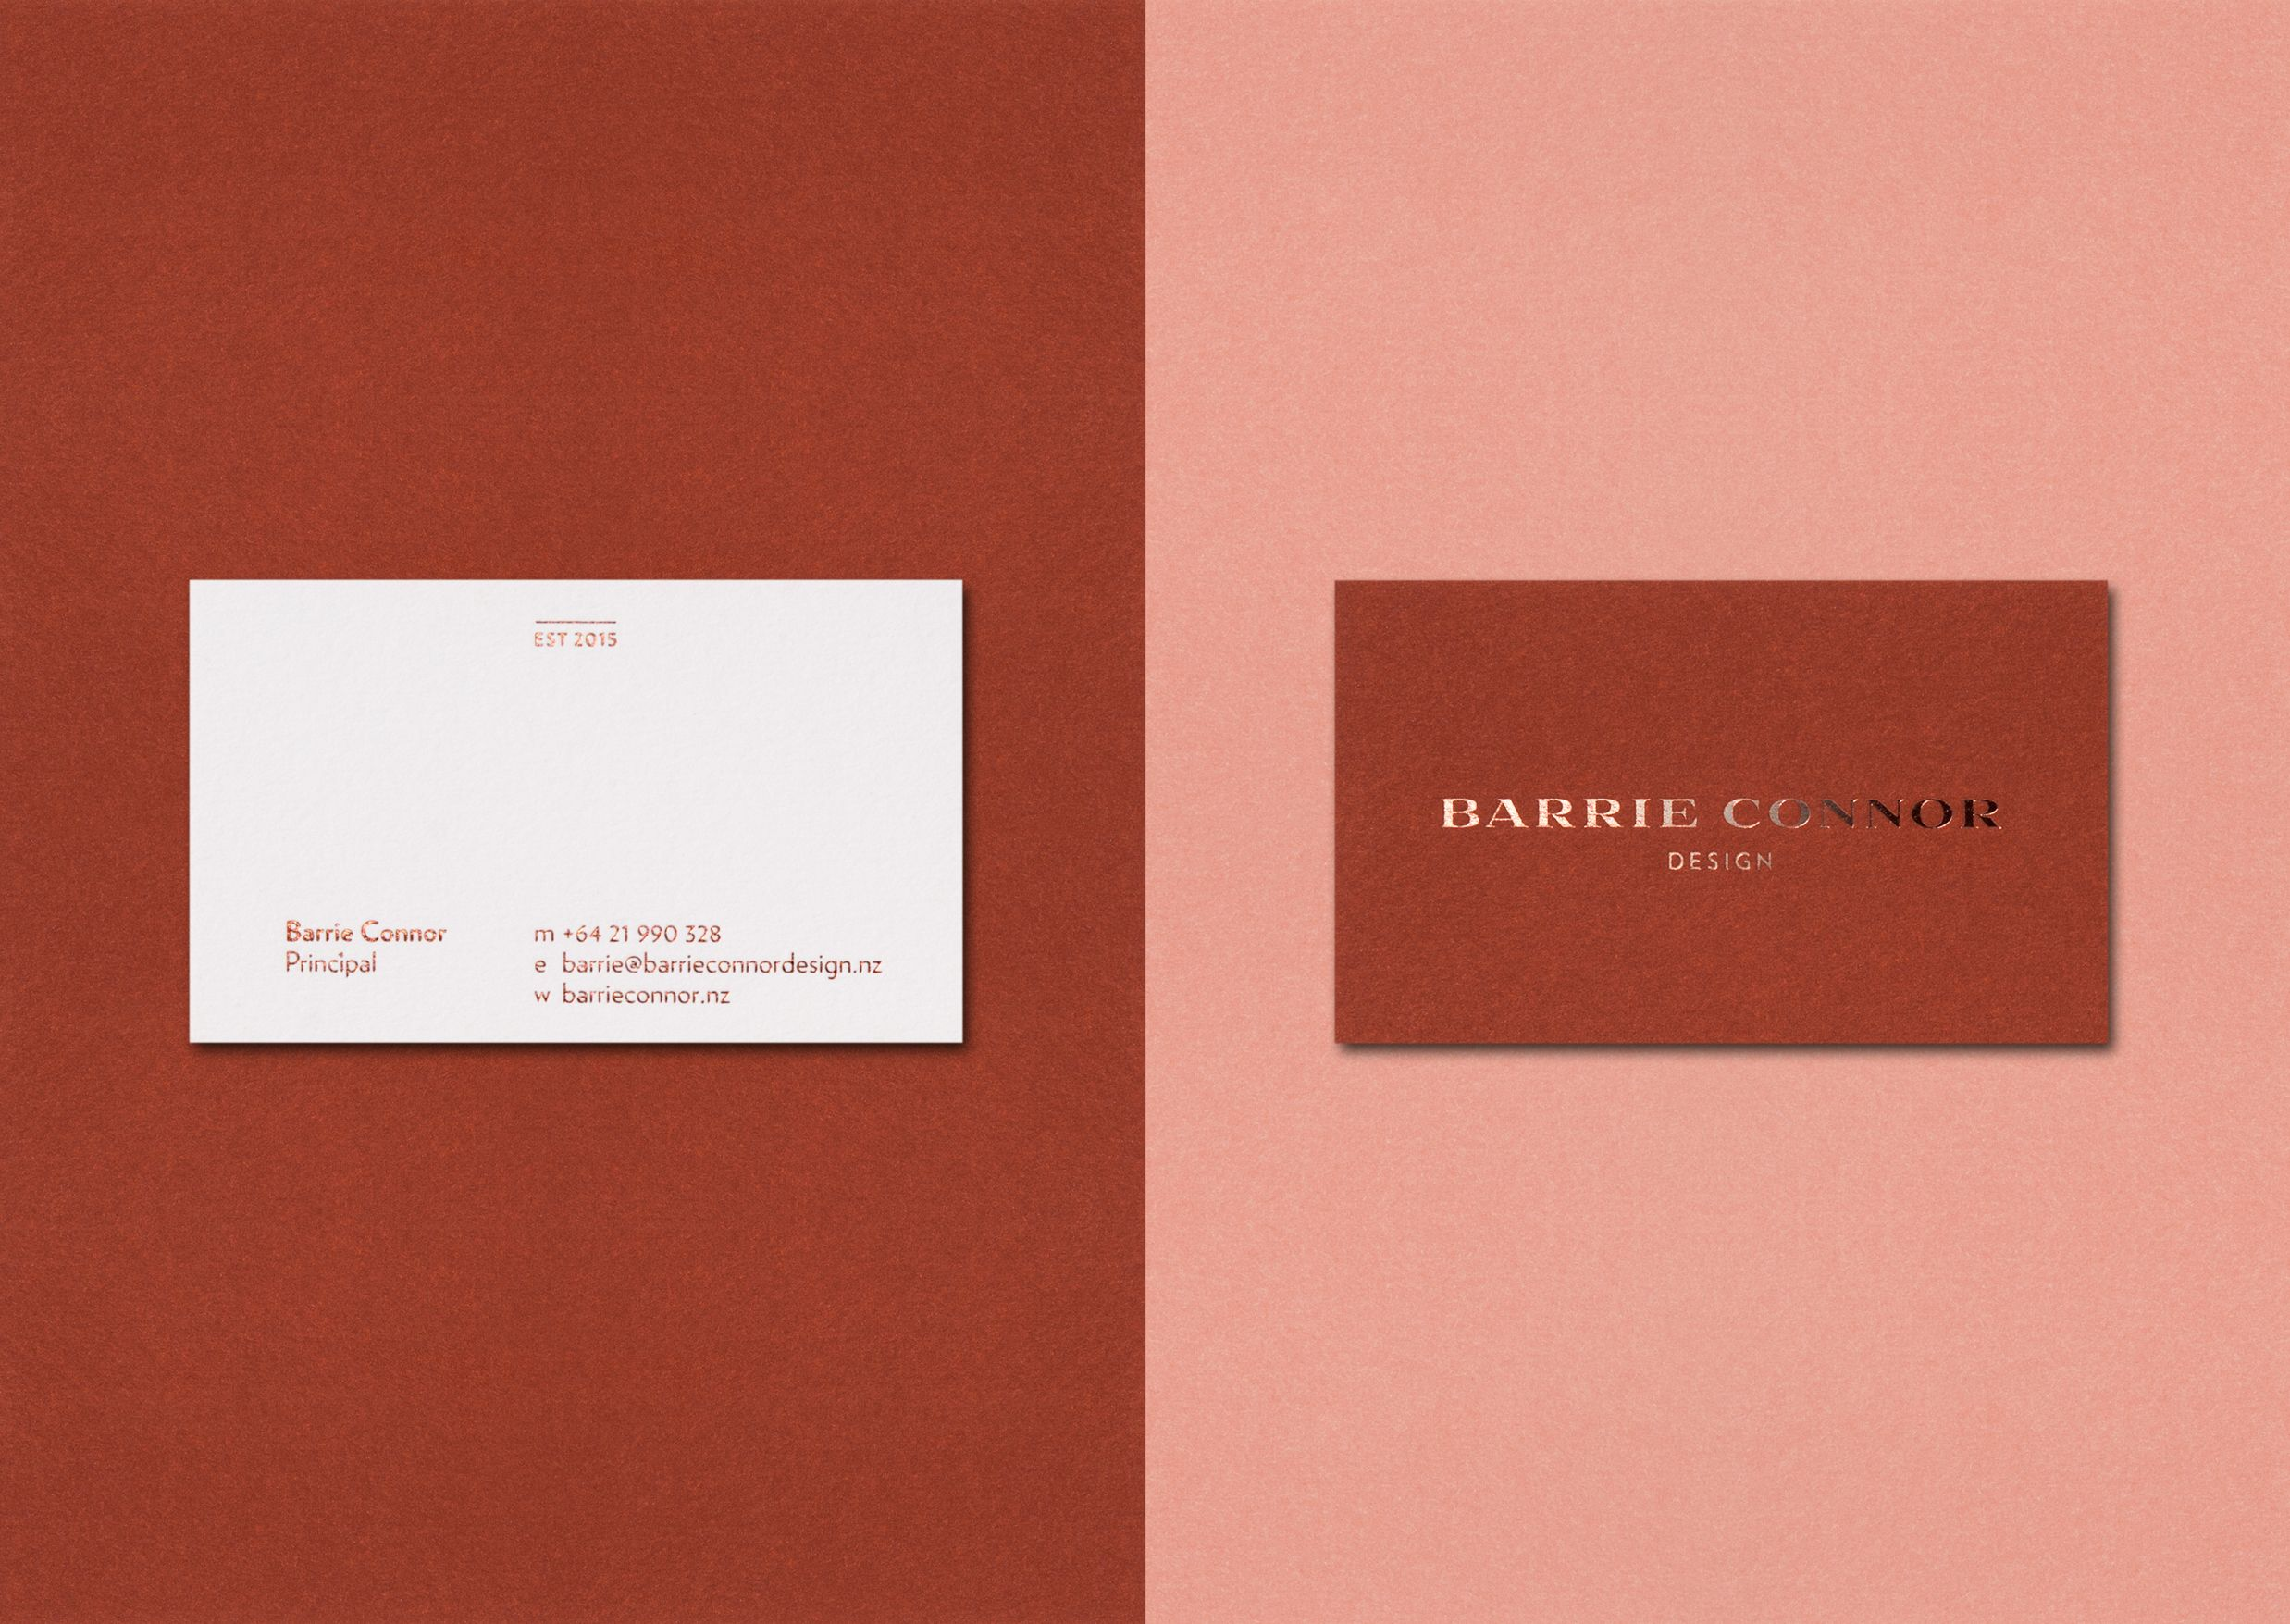 Business cards for barrie connor design a boutique interior design business cards for barrie connor design a boutique interior design practice based in new zealand a trio of bespoke mixed colours make for a unique and reheart Choice Image